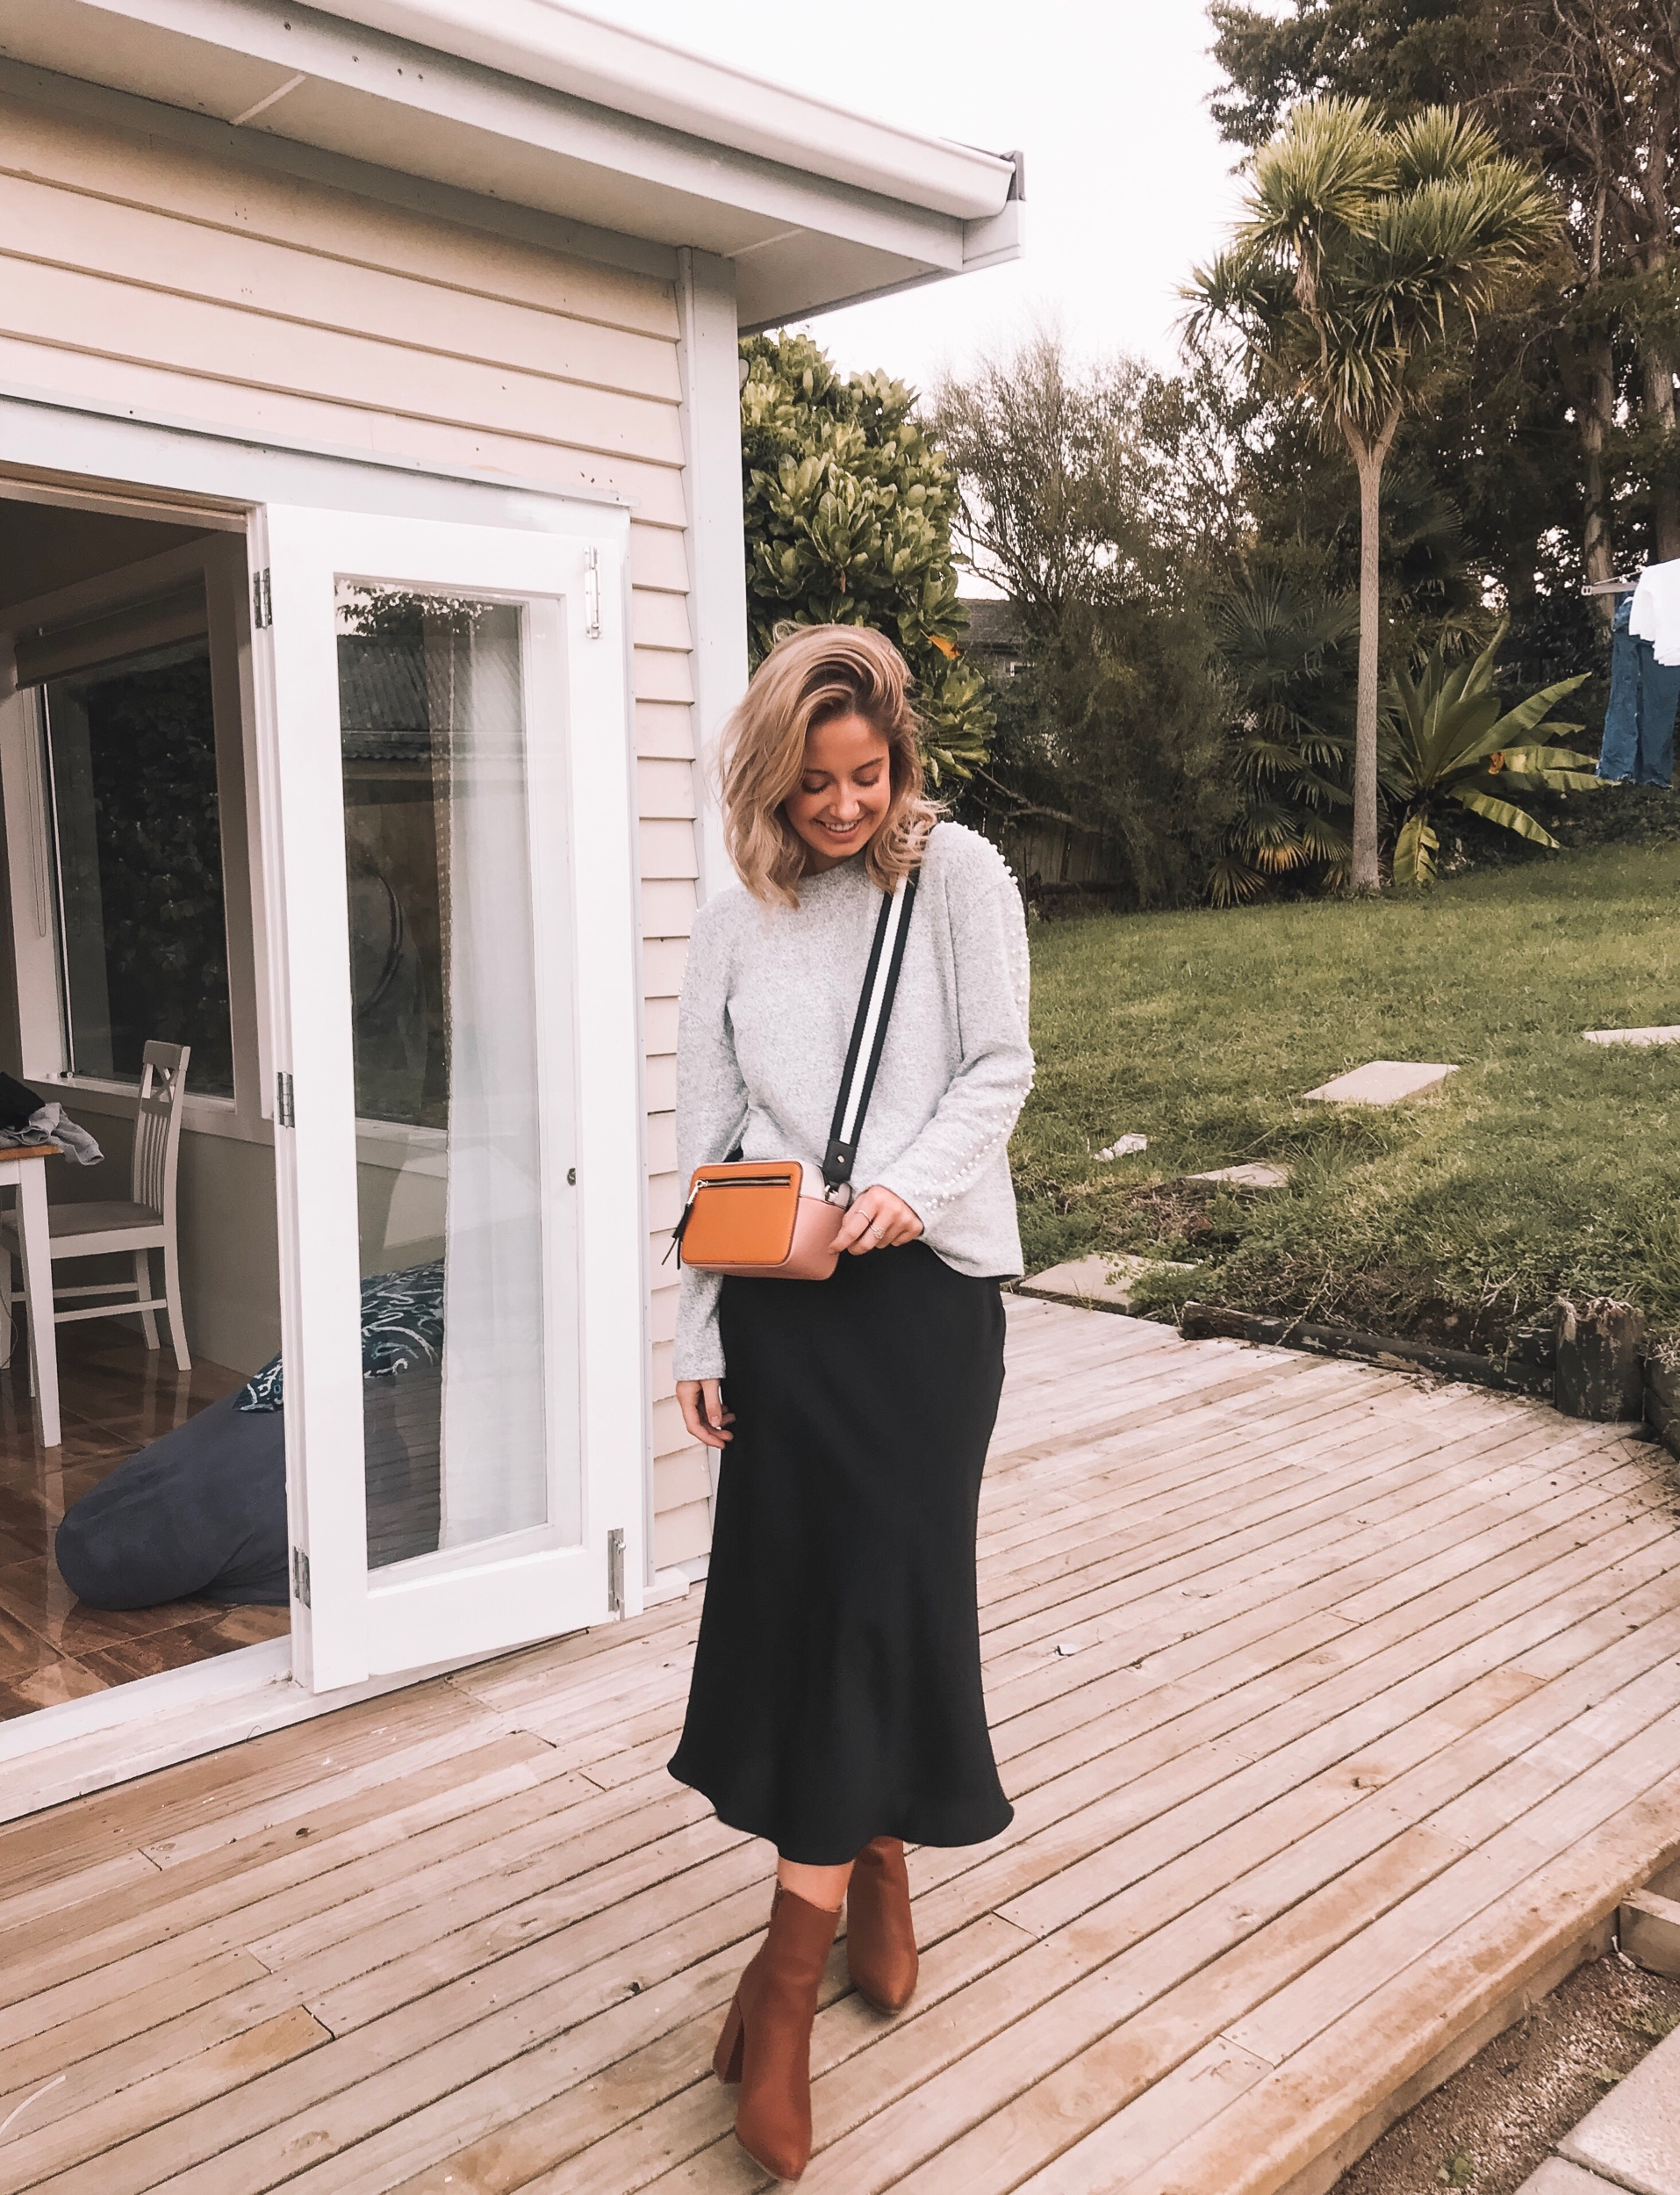 MAXI MAXI - Adding length to your skirt choices should be an obvious one, and with bias cut skirts taking over the world it's never been easier!! If you wanted to be super cozy, pop a pair of sheer tights underneath to stop the fresh air biting at your ankles.